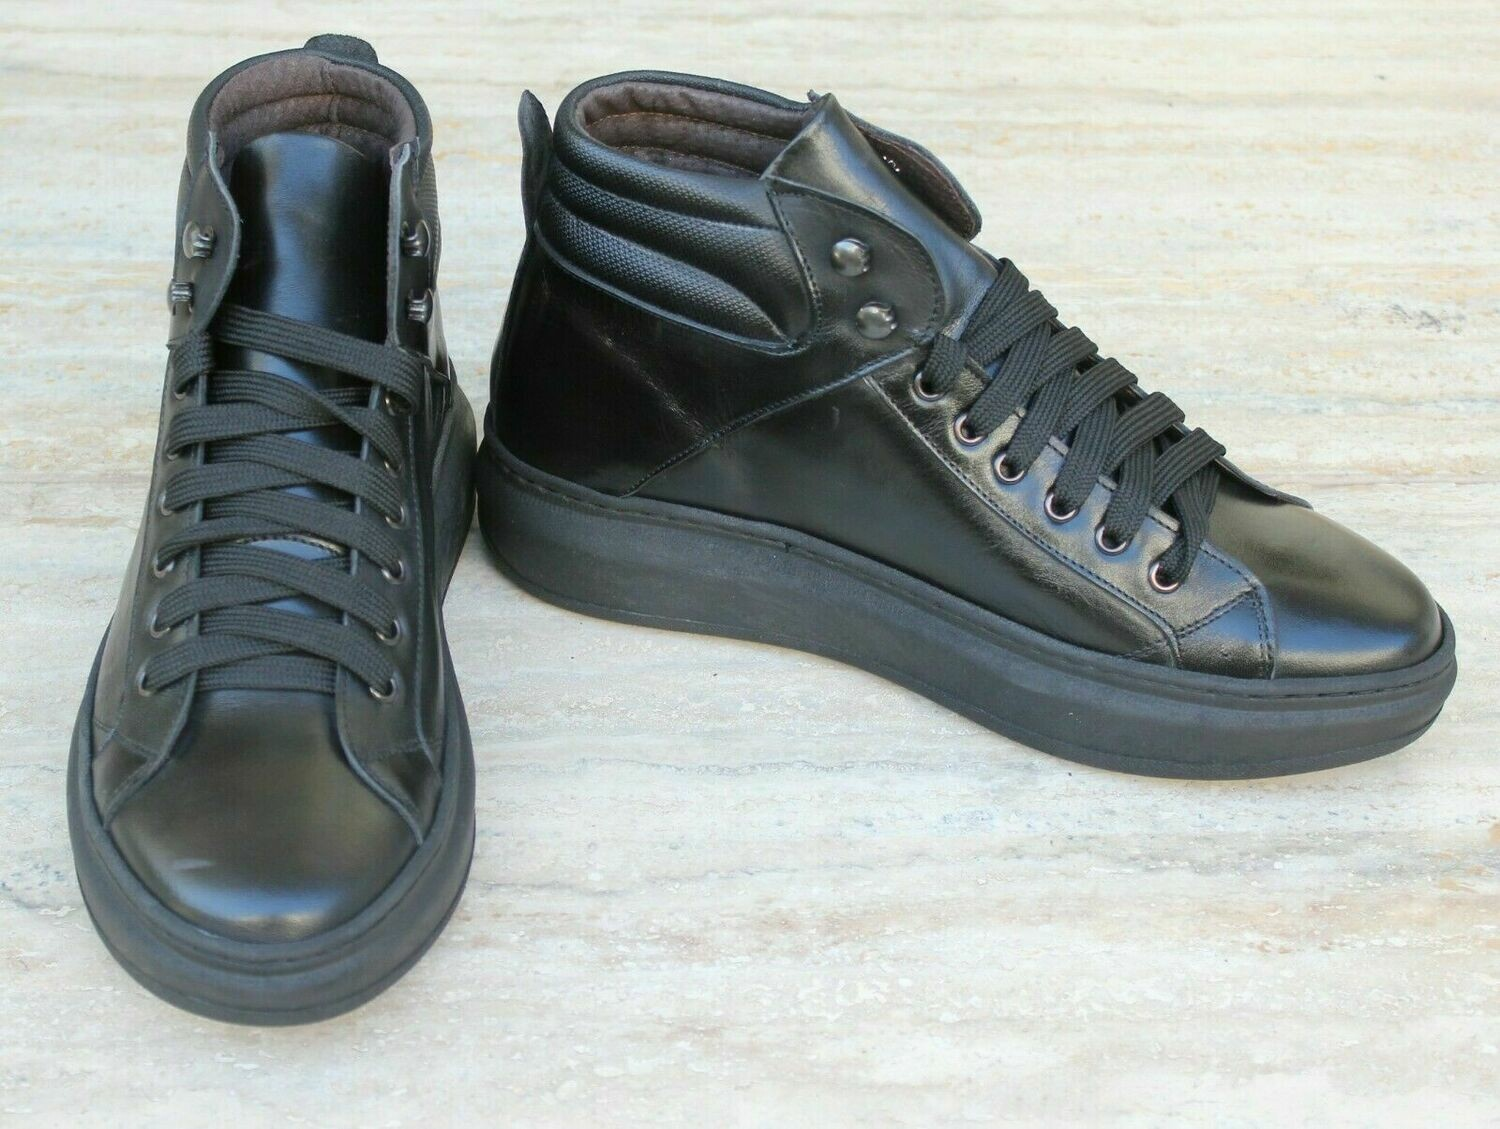 Leather sneakers with stitched sole